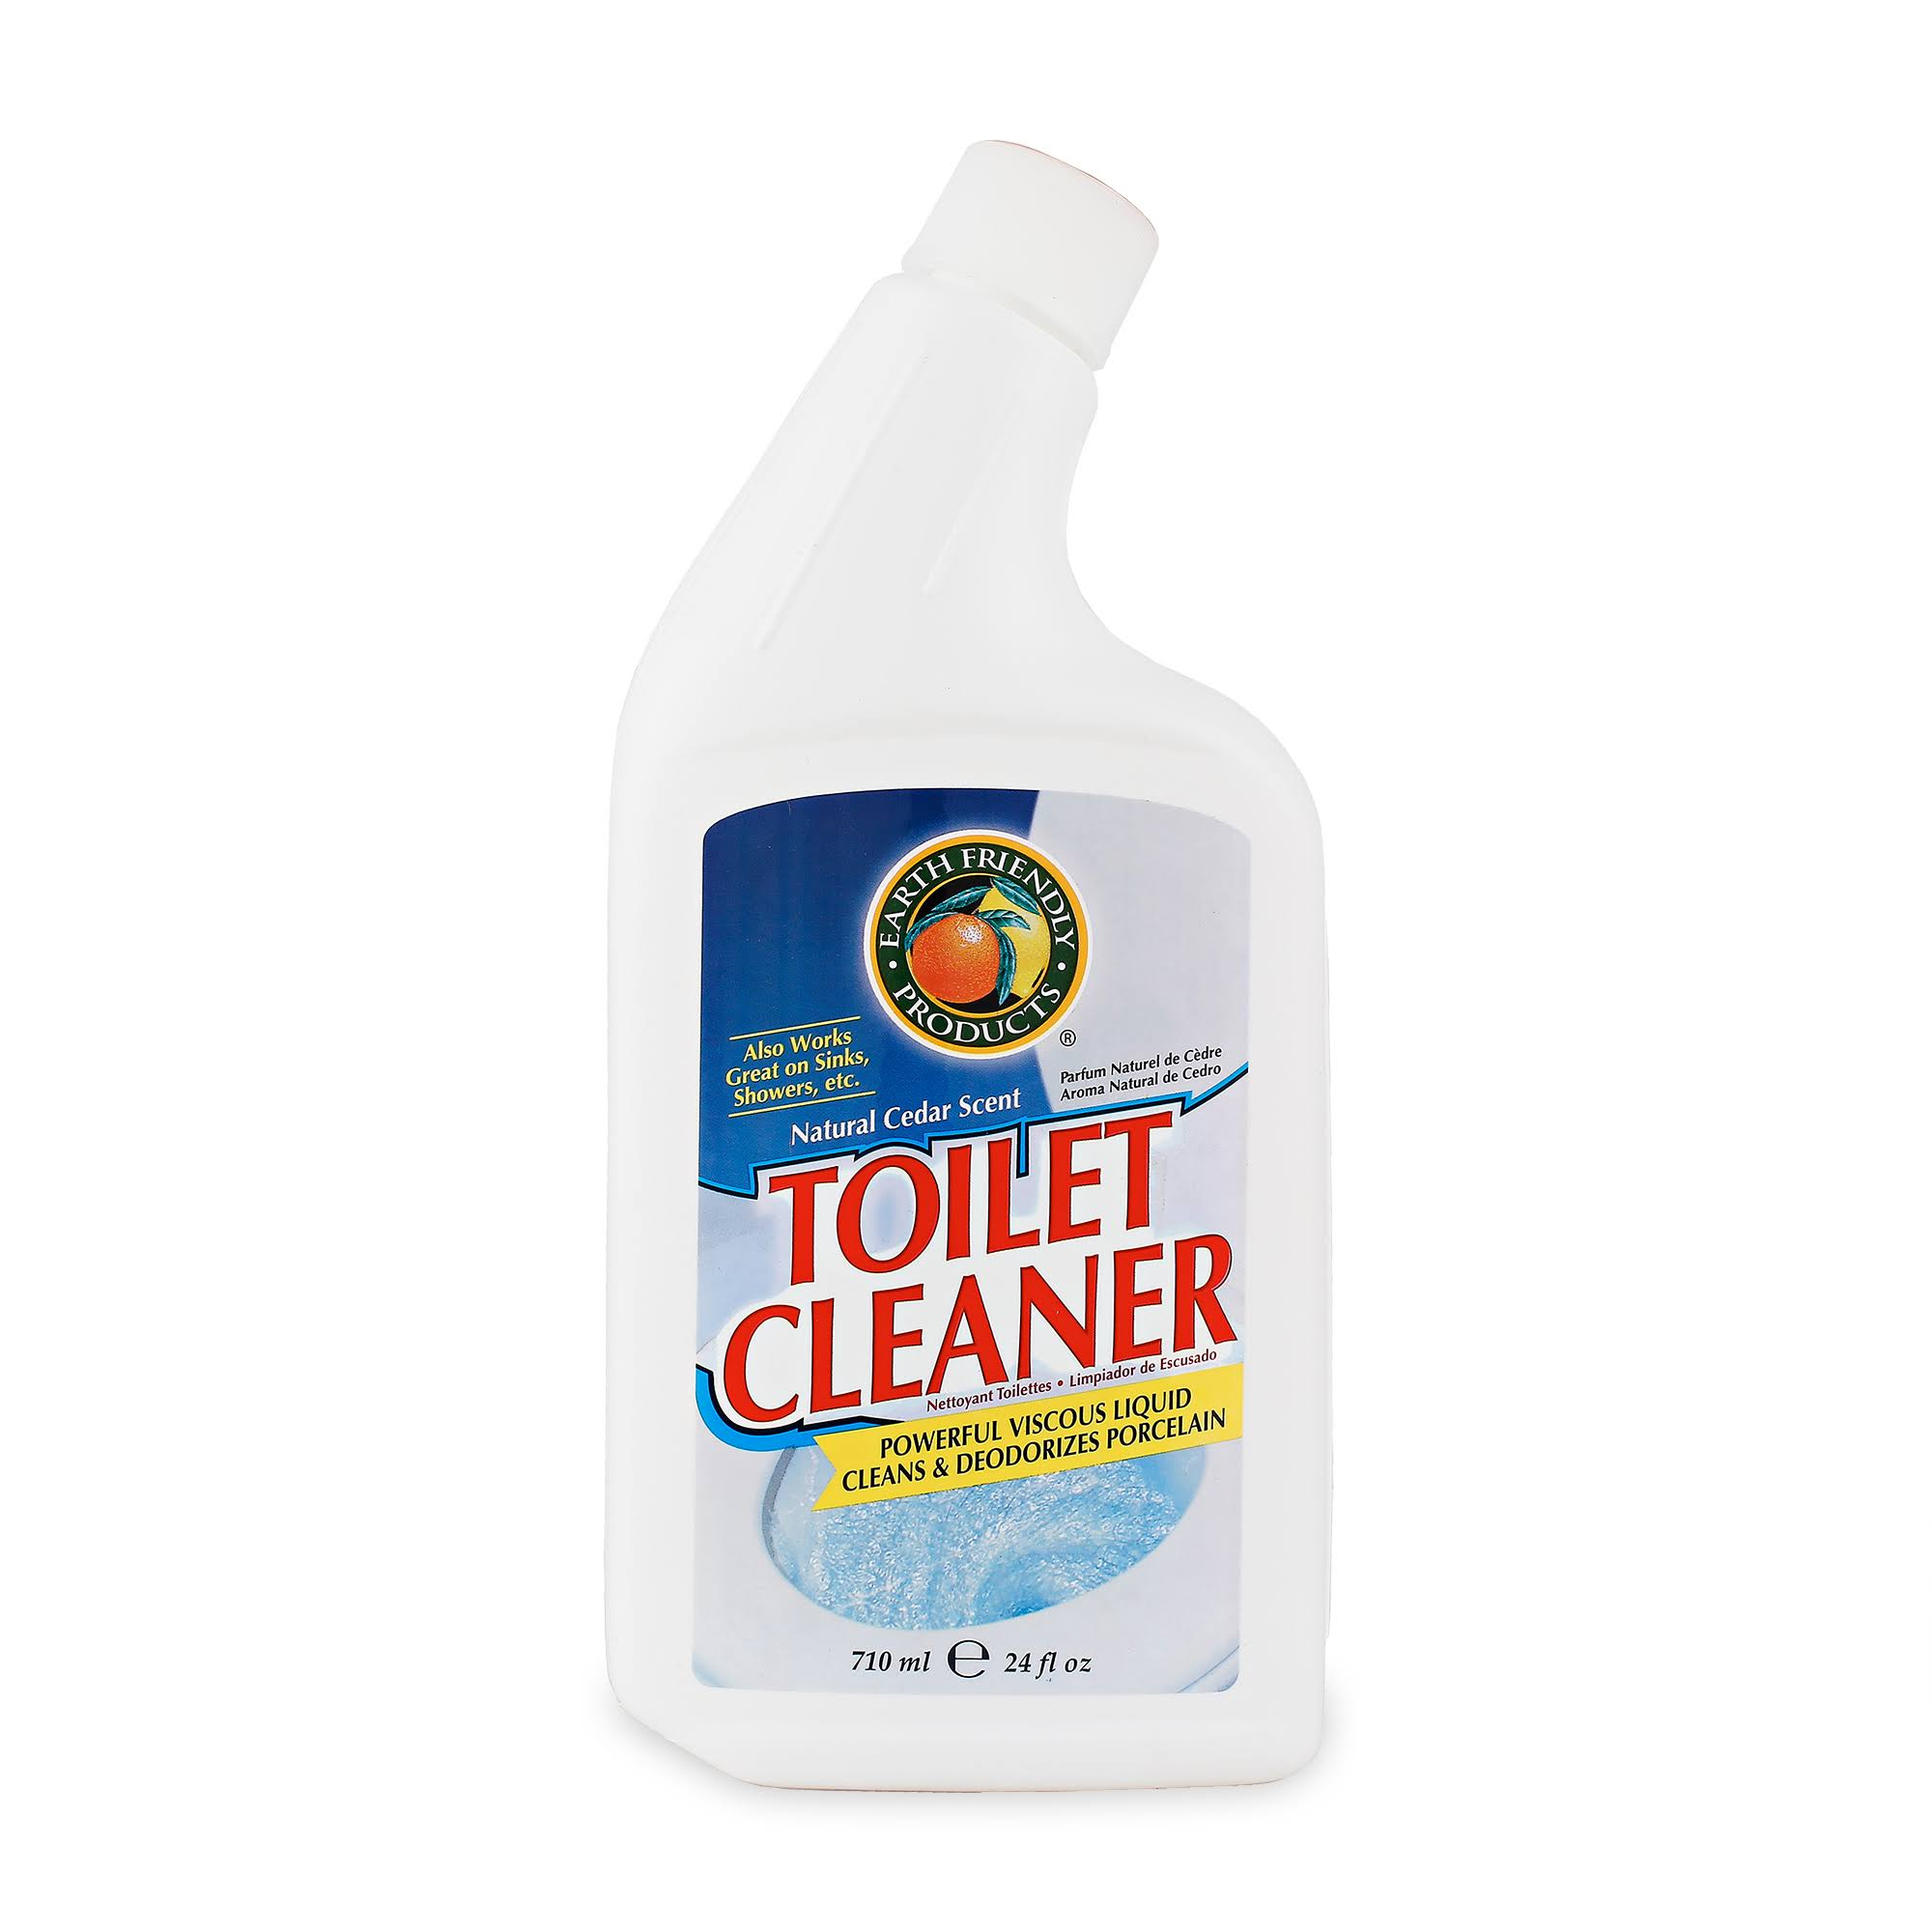 Earth Friendly Toilet Cleaner Bottle - 24oz